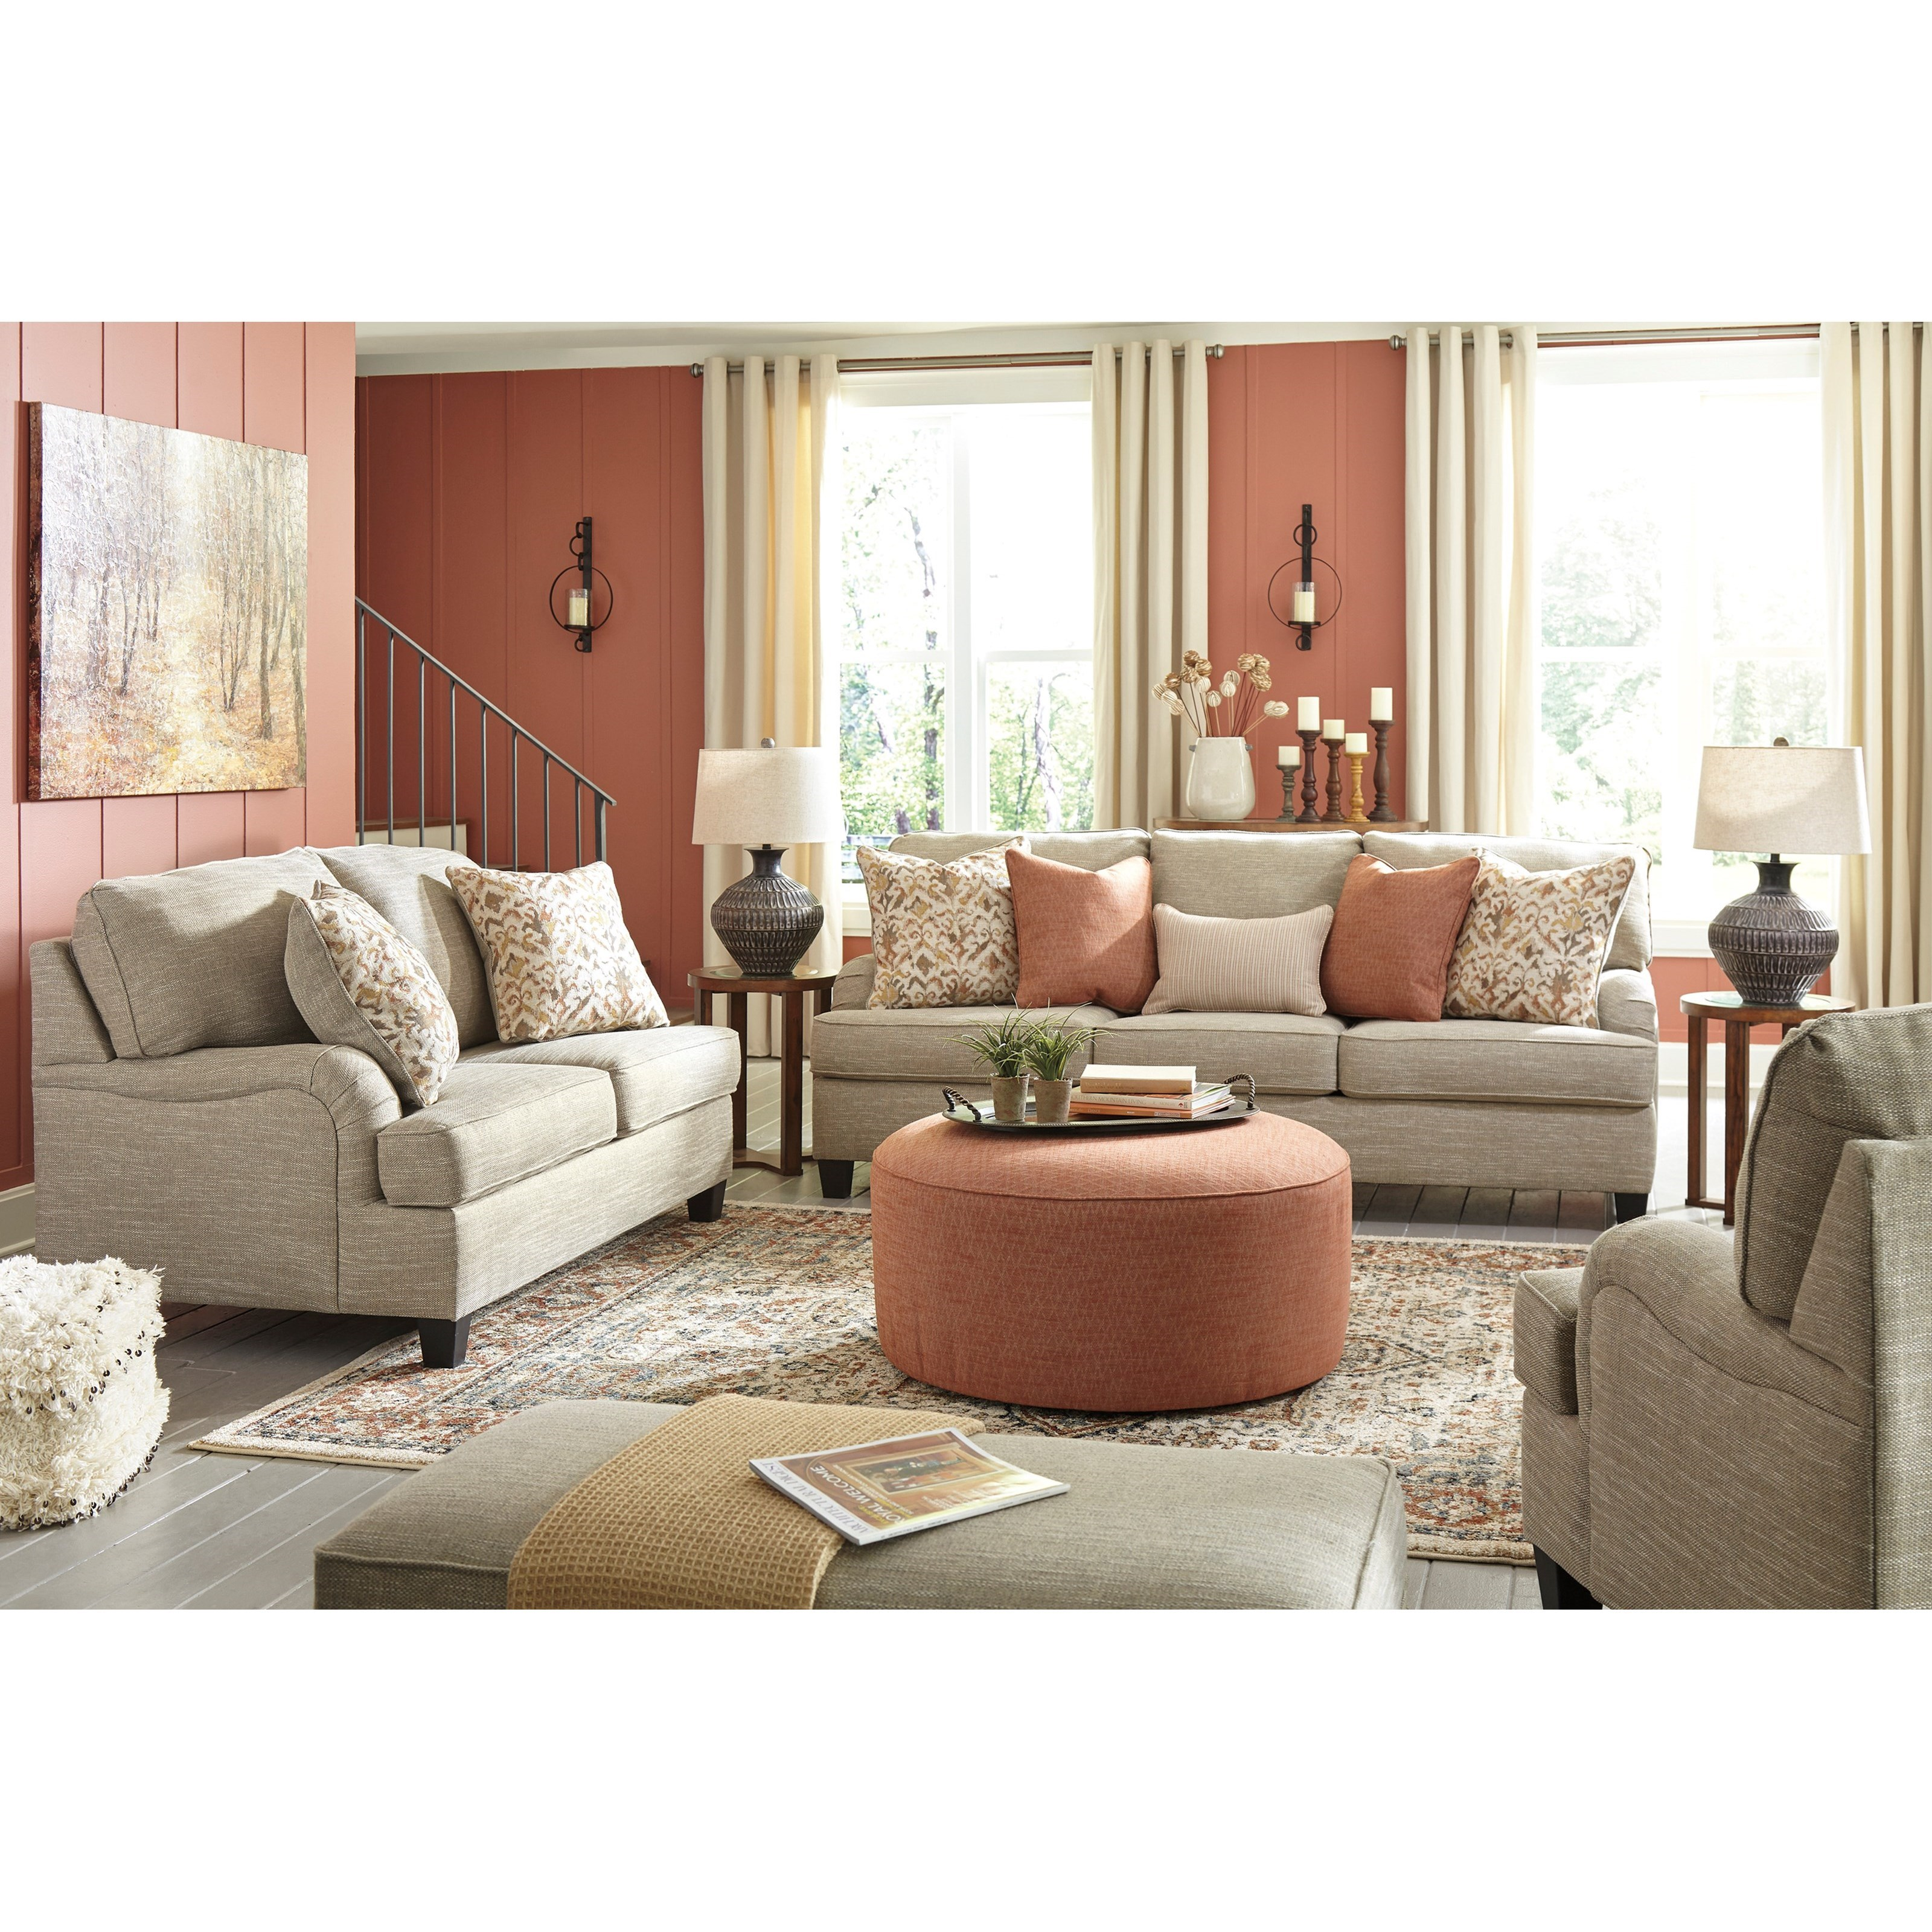 Almanza Living Room Group by Signature Design by Ashley at Sparks HomeStore